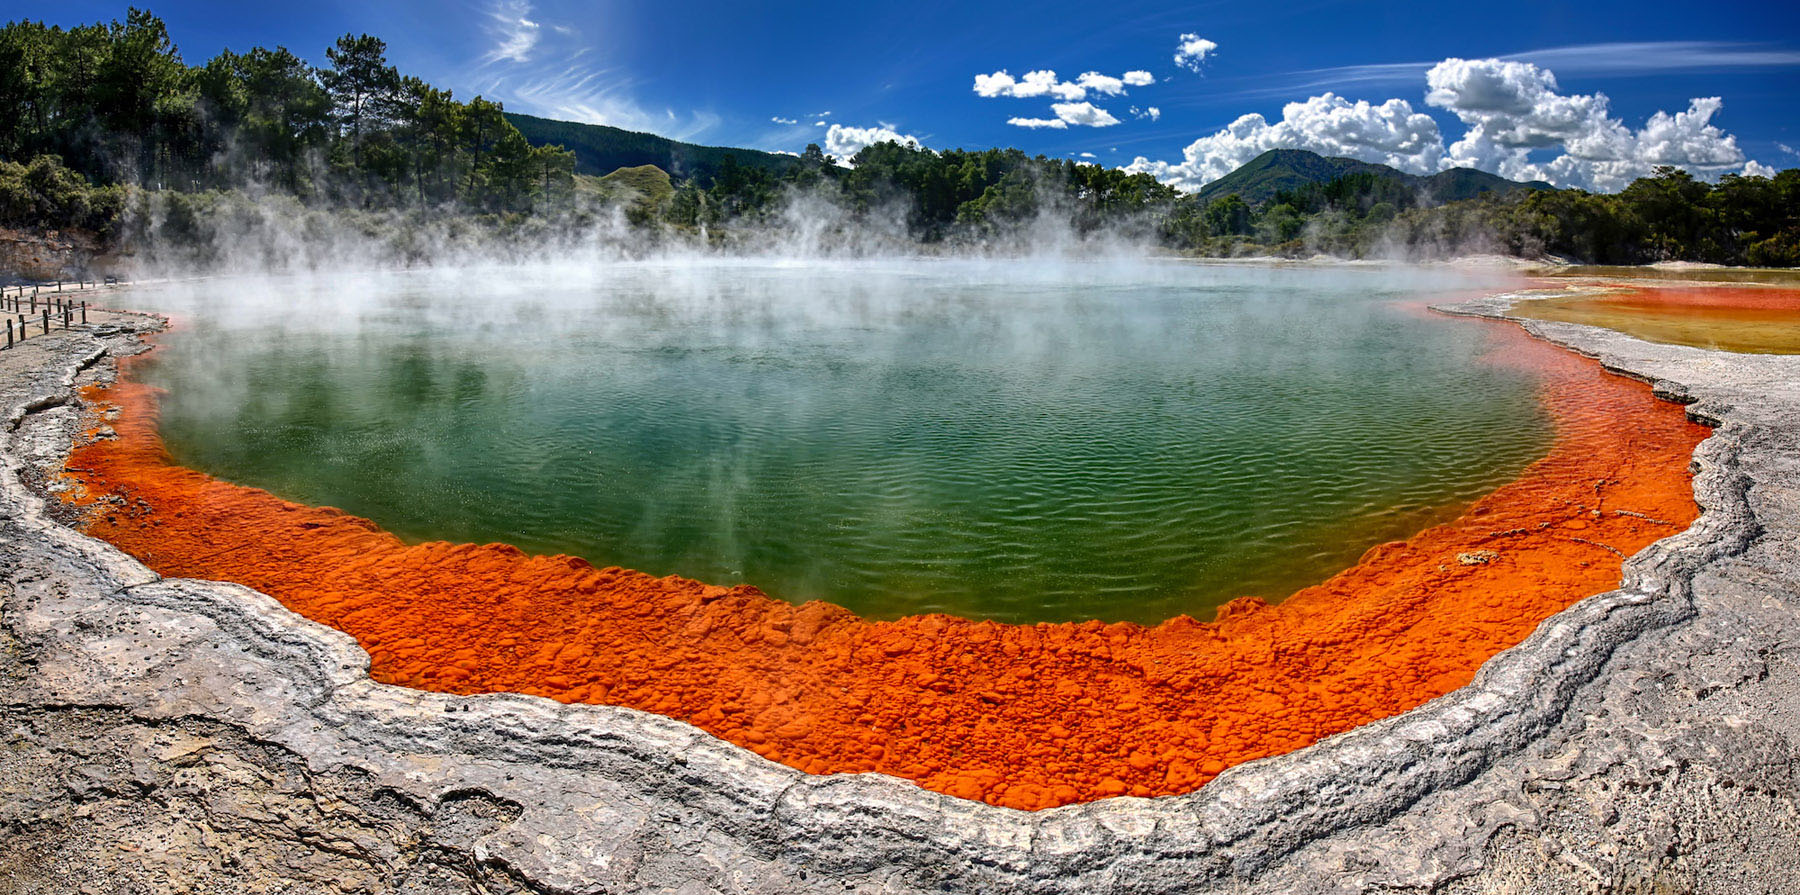 Visit the famous Champagne Pool in Rotorua, New Zealand.